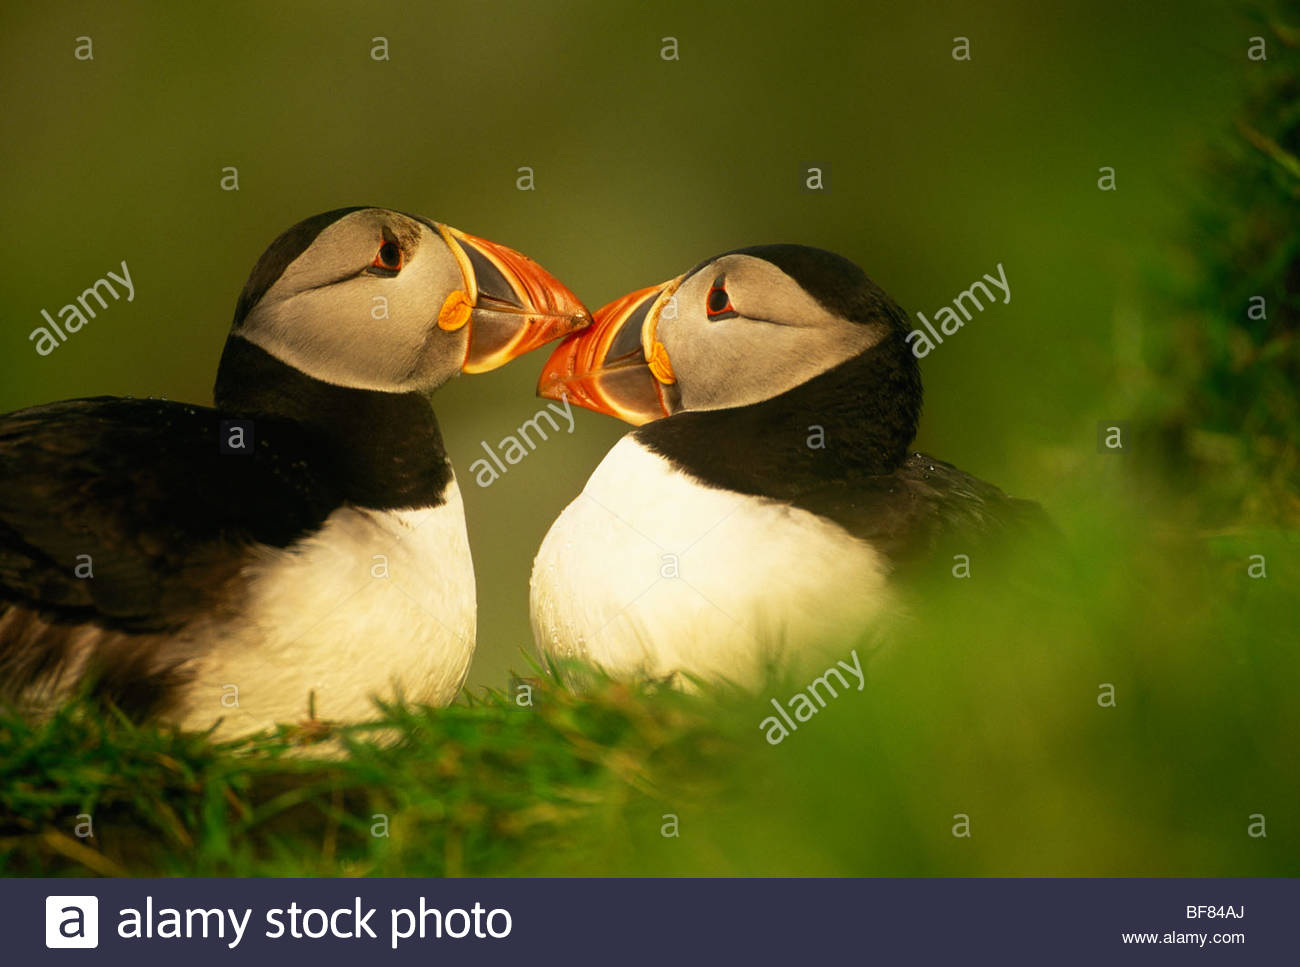 Puffins with brighter and larger beaks during mating season, Fratercula arctica, Outer Hebrides, Scotland - Stock Image